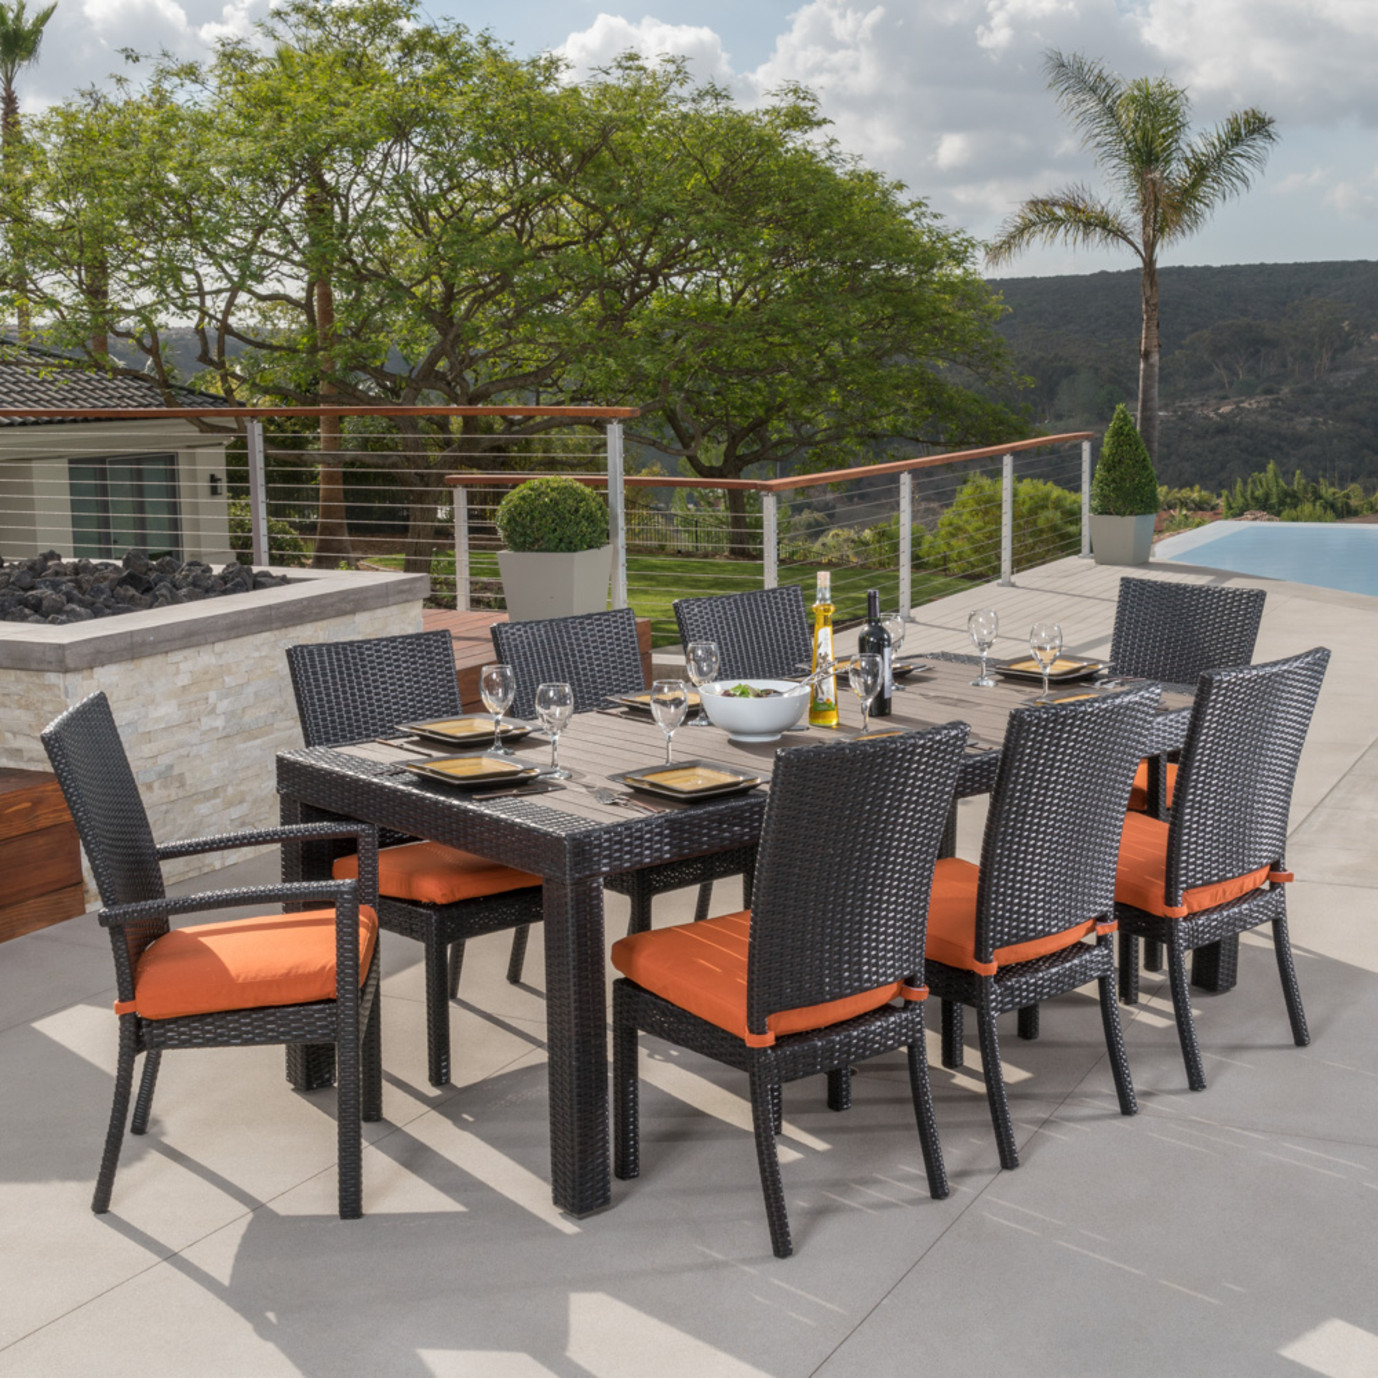 Deco™ 9 Piece Dining Set - Tikka Orange